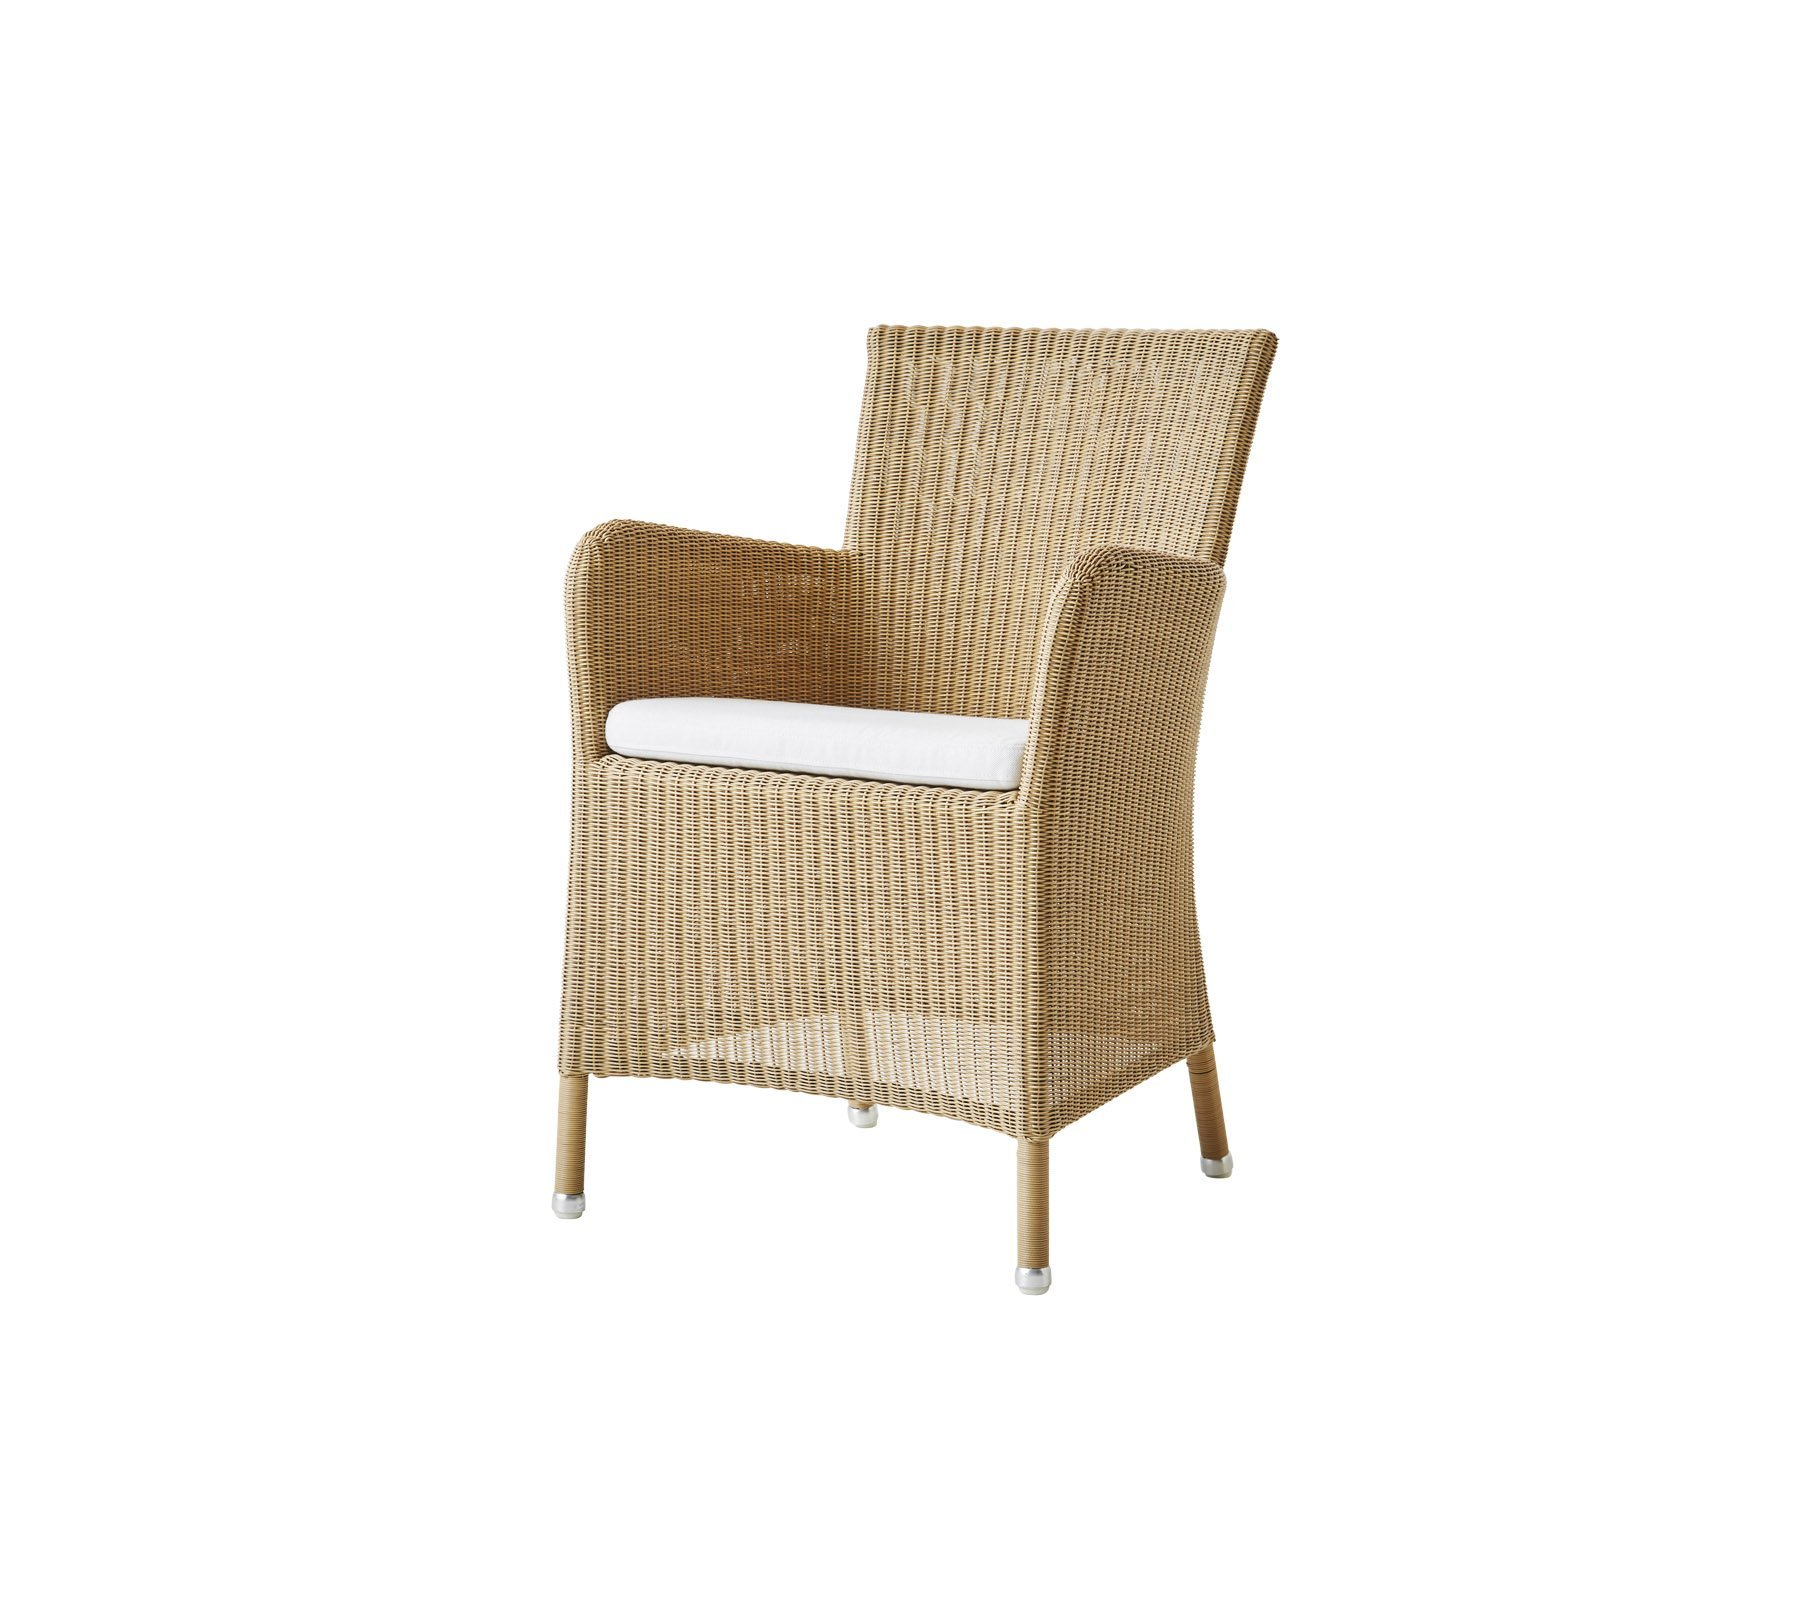 Hampsted Chair from Cane-line